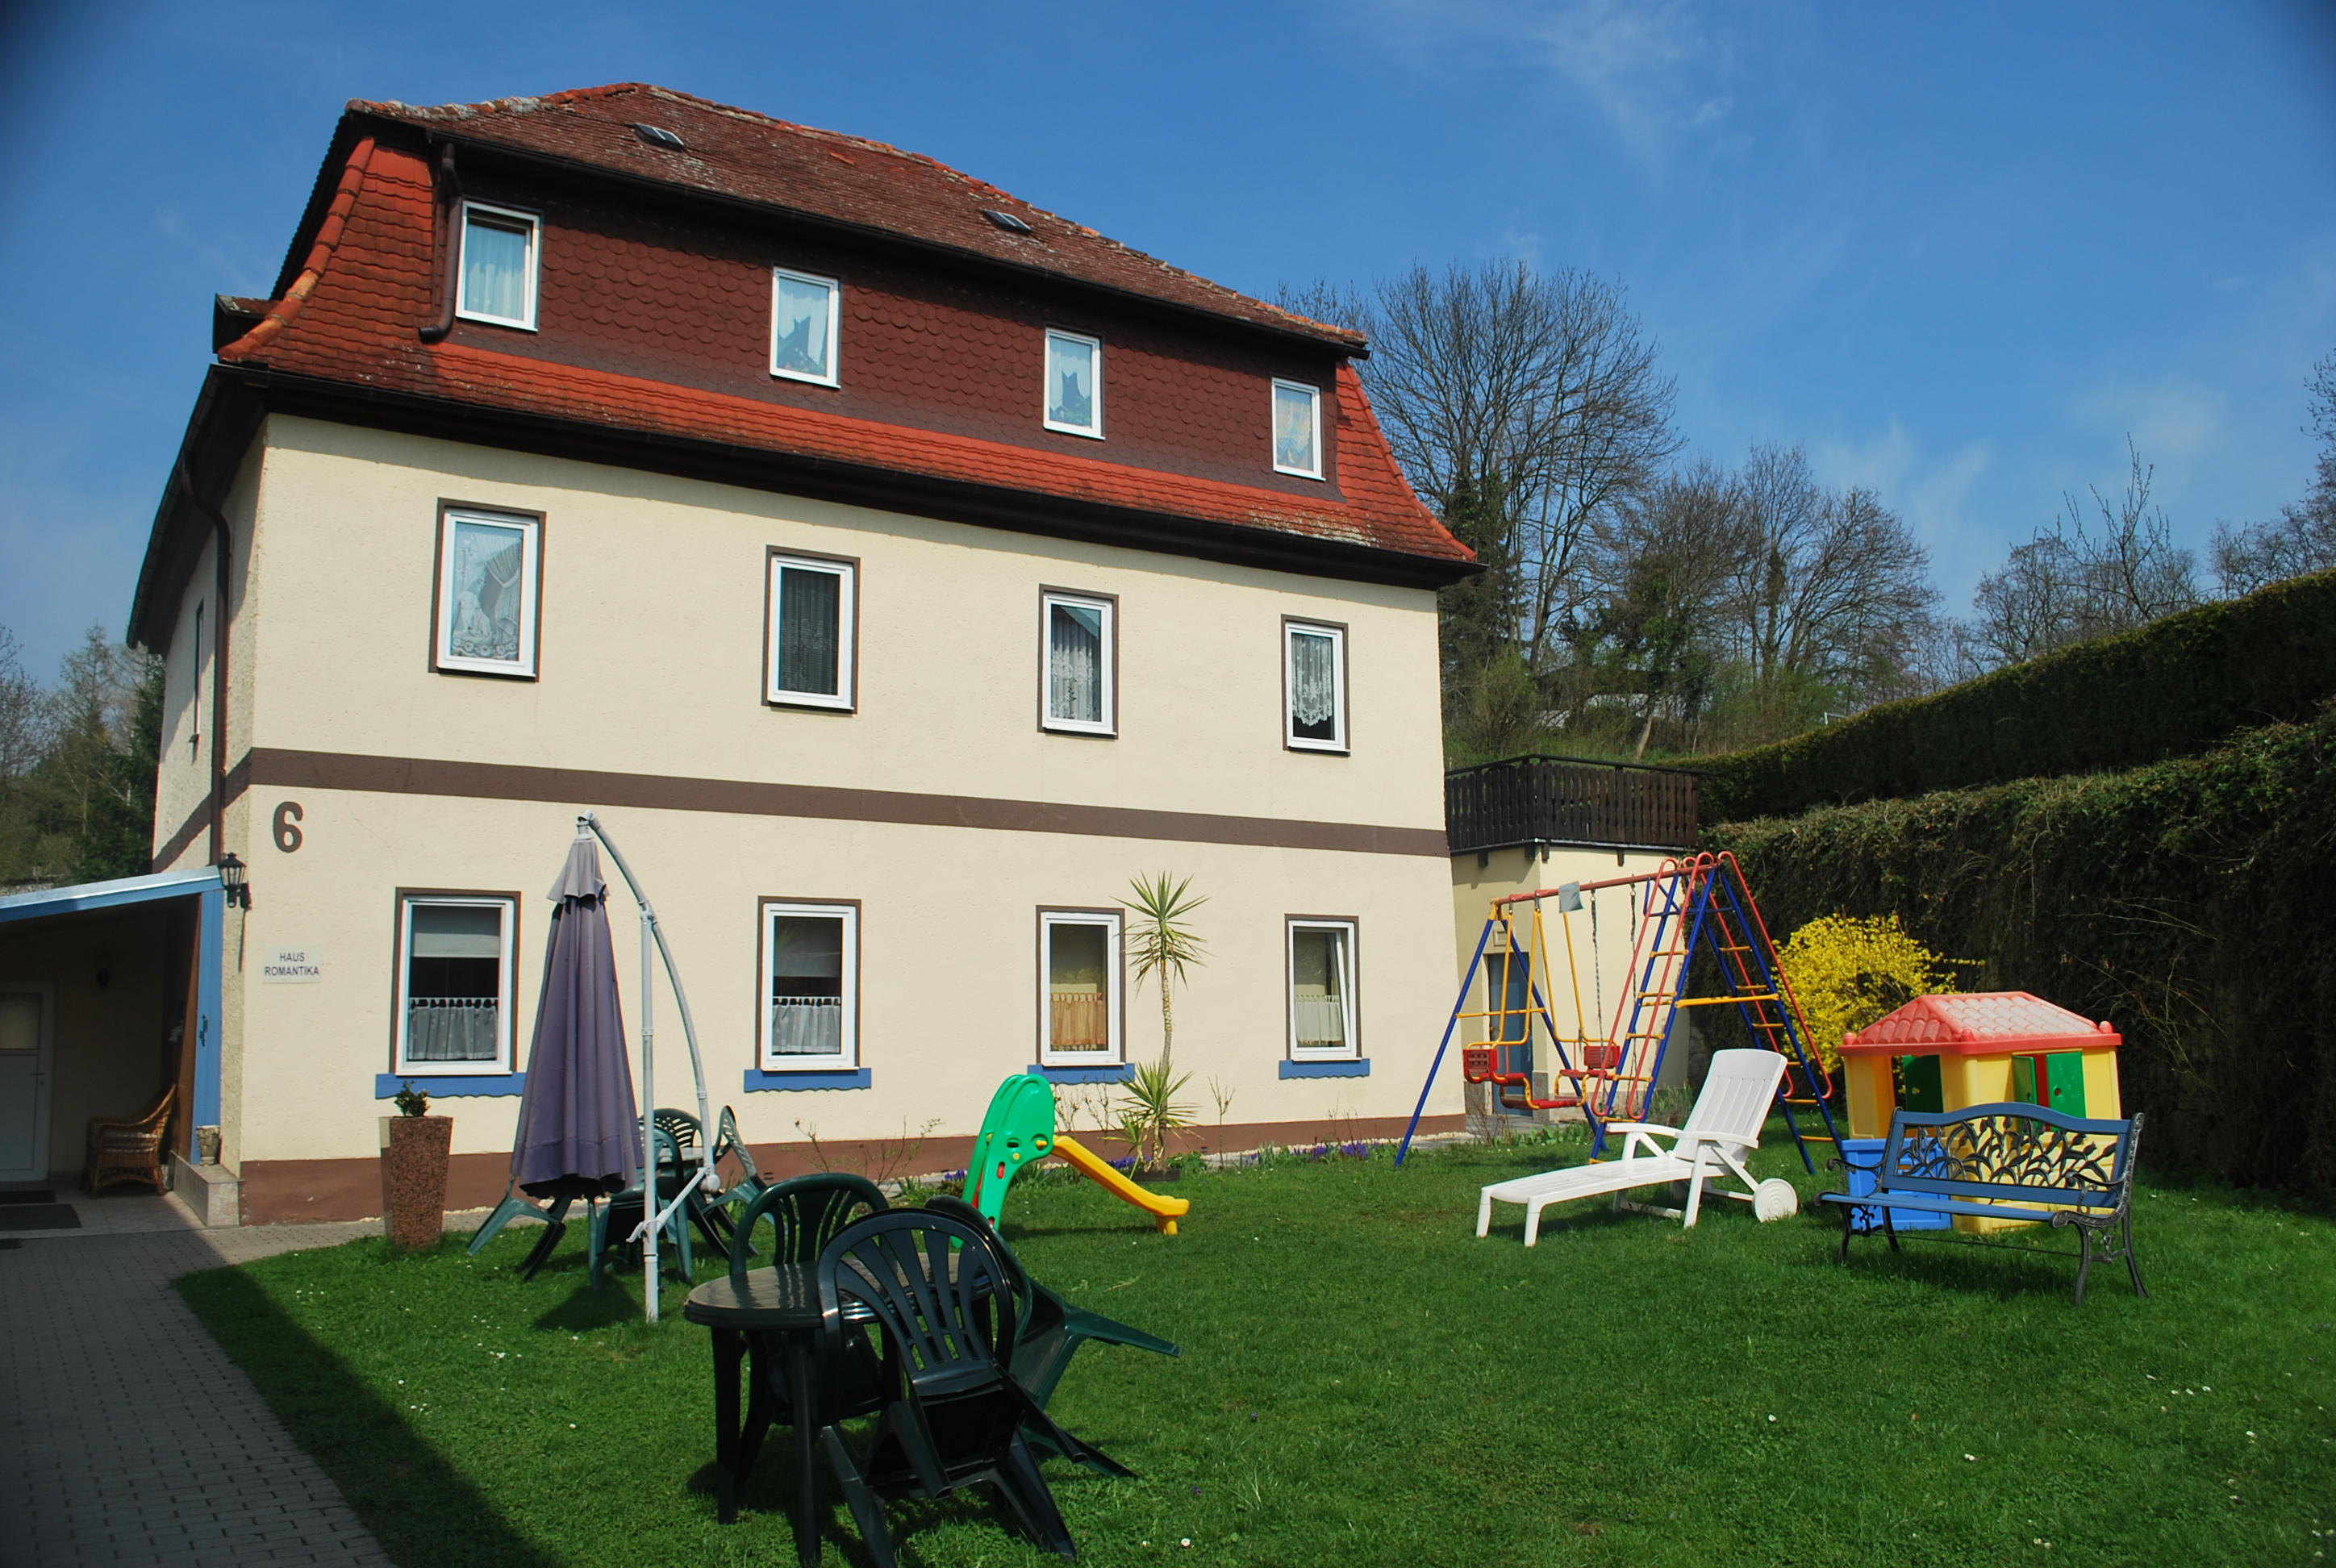 Holiday apartment Seepferdchen (2 Pers- 20m2) (421799), Bad Sulza, Weimar Country, Thuringia, Germany, picture 5